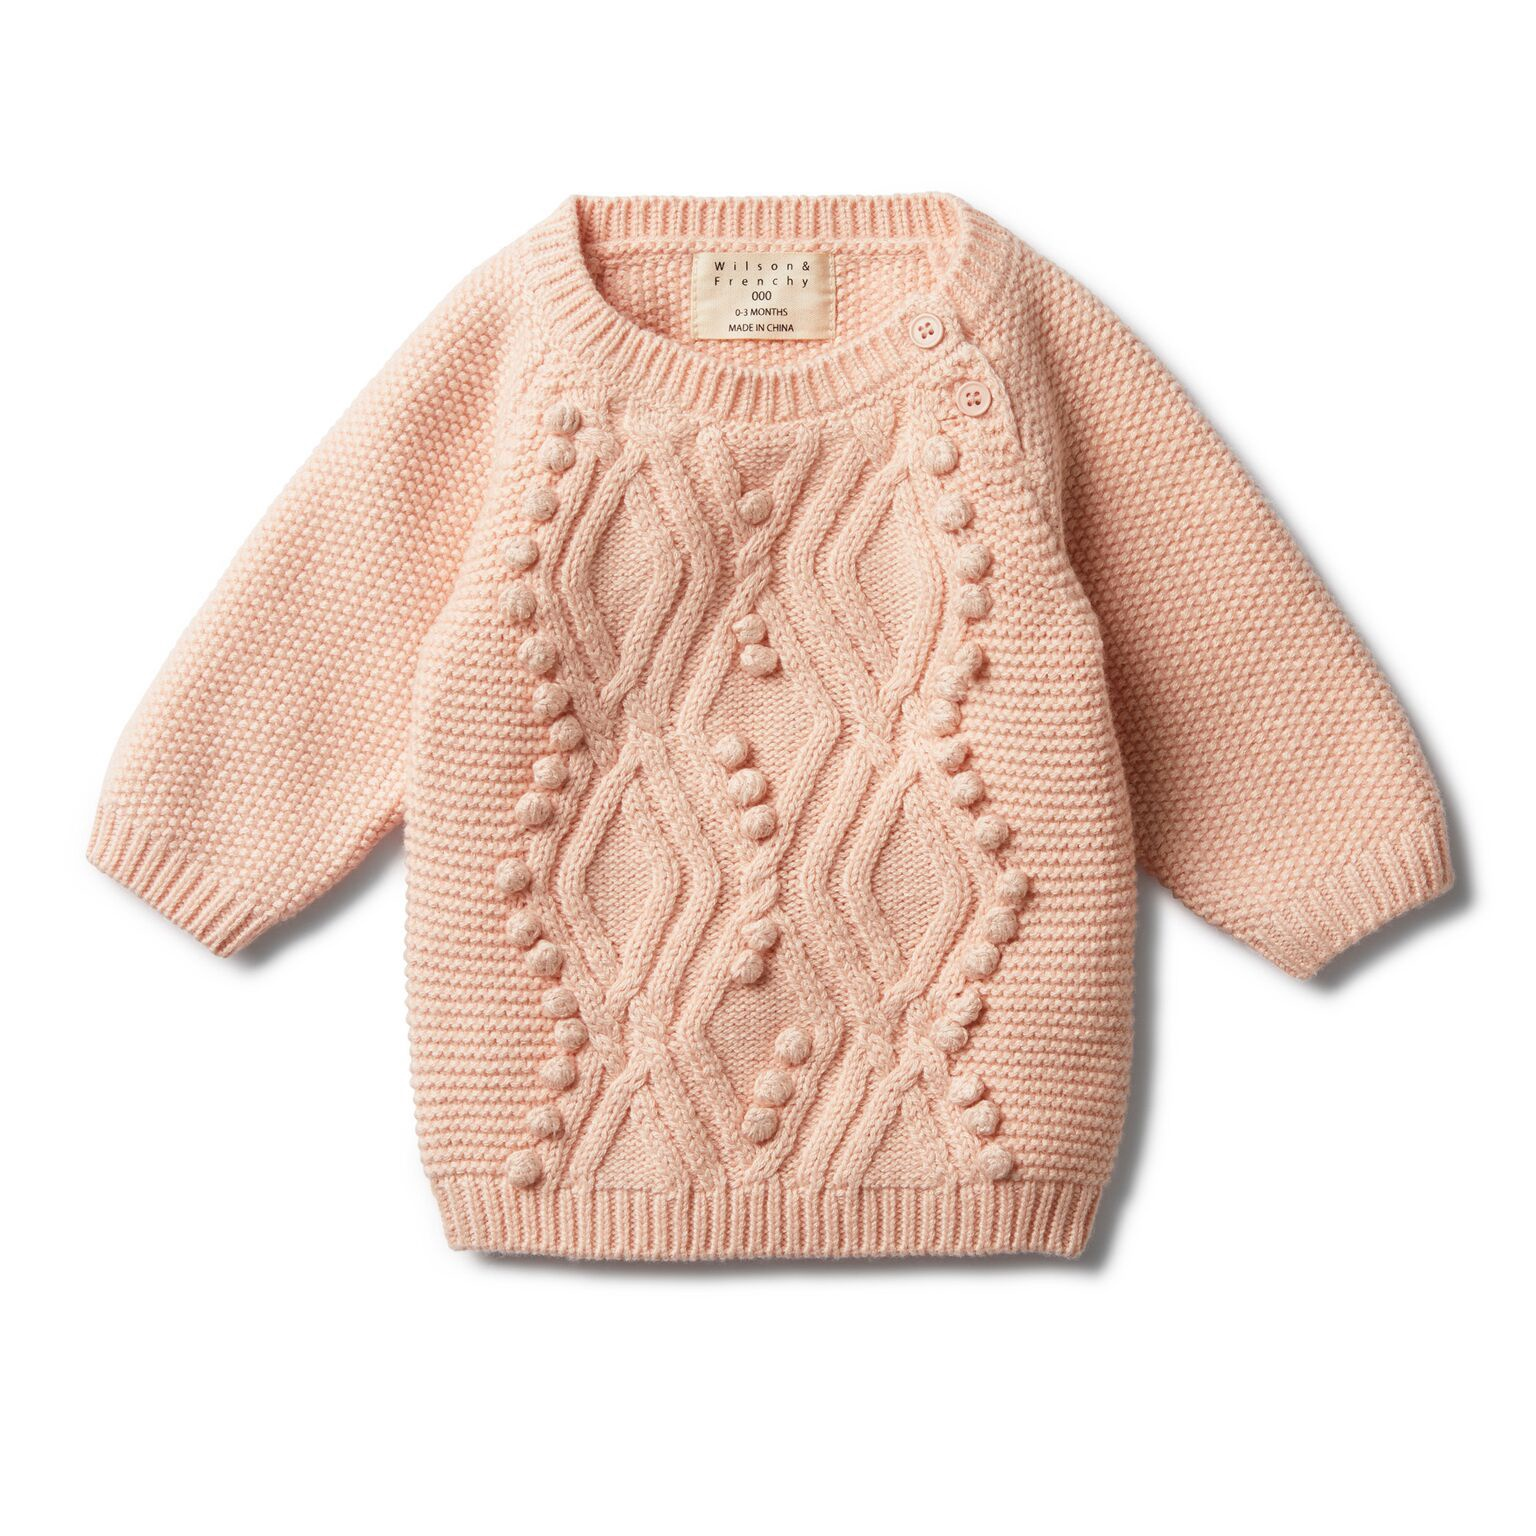 WF Peachy pink cable knitted pom pom jumper